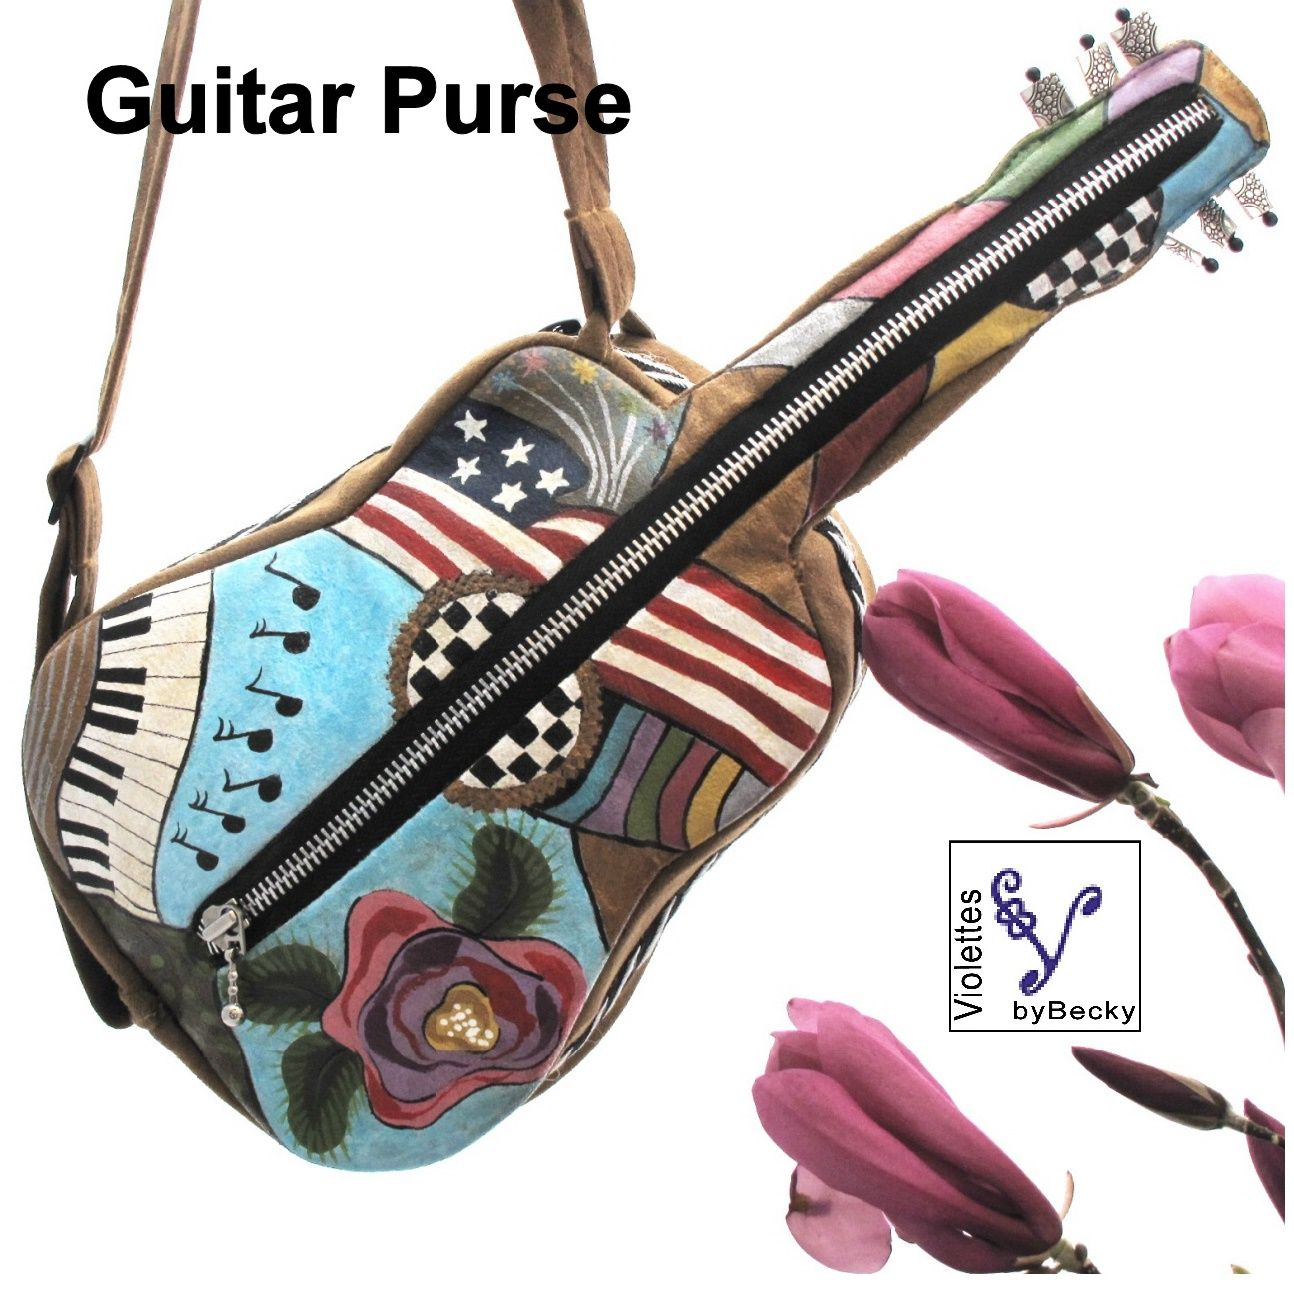 Violettes by Becky Guitar Purse Xmas Gifts for Music Purse Lovers Designed and Hand Painted in Tennessee